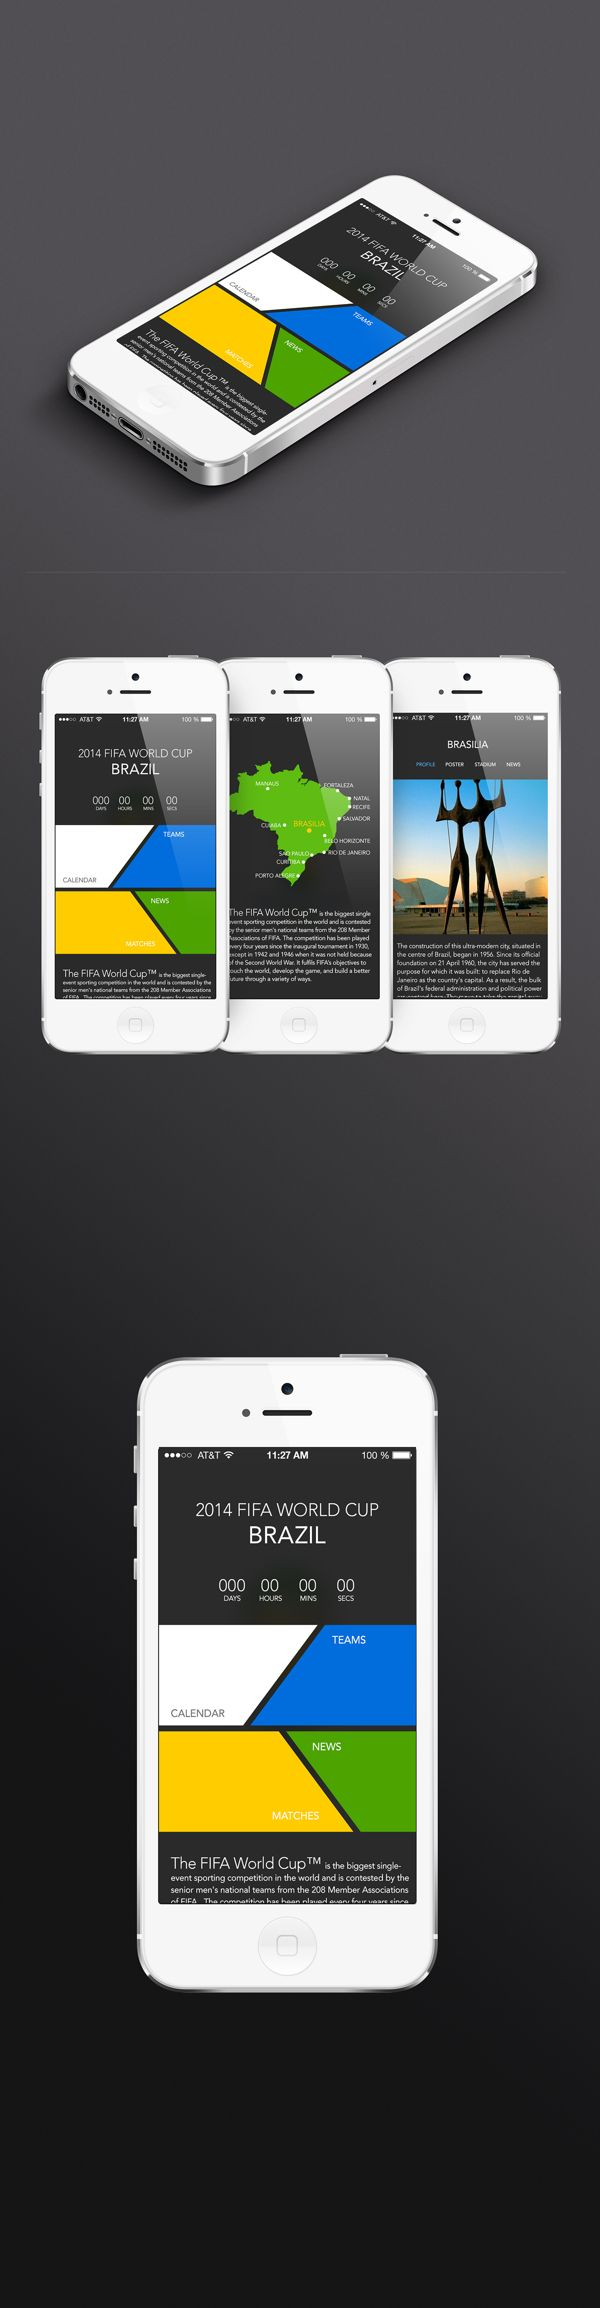 2014 brazil world cup iphone app user interface.  #brazil #worldcup #iphone #ui #nikhil